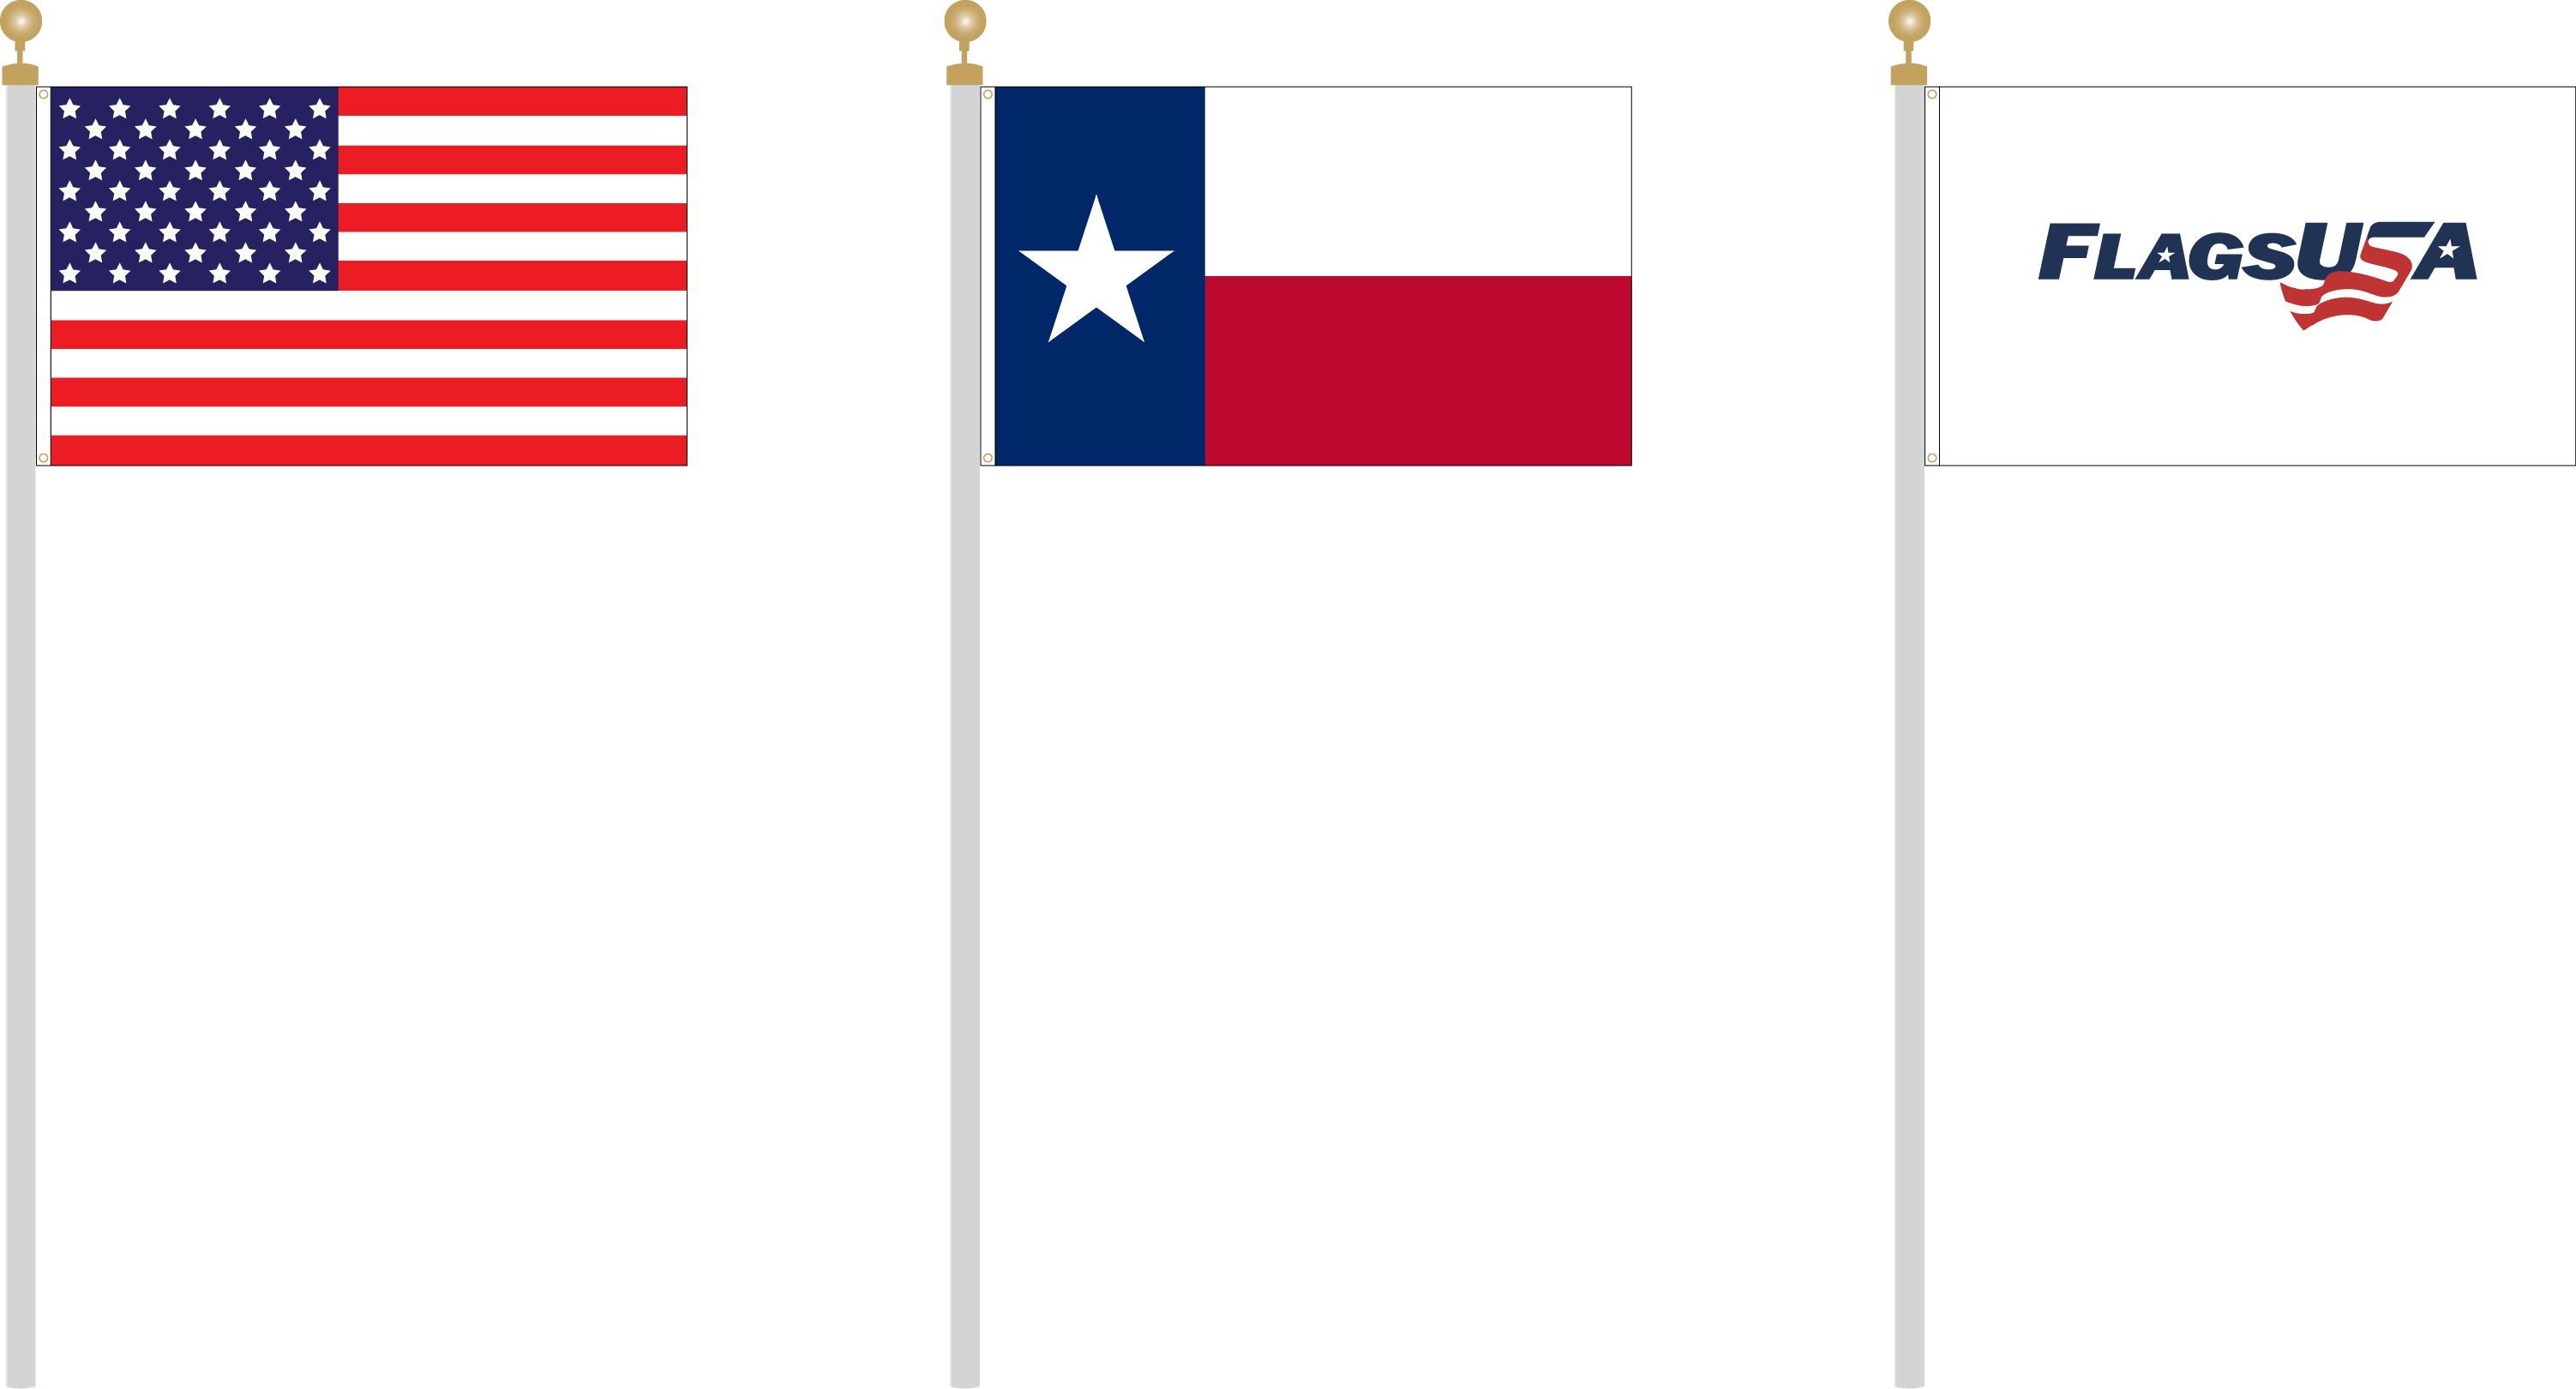 image-3-separate-poles.png